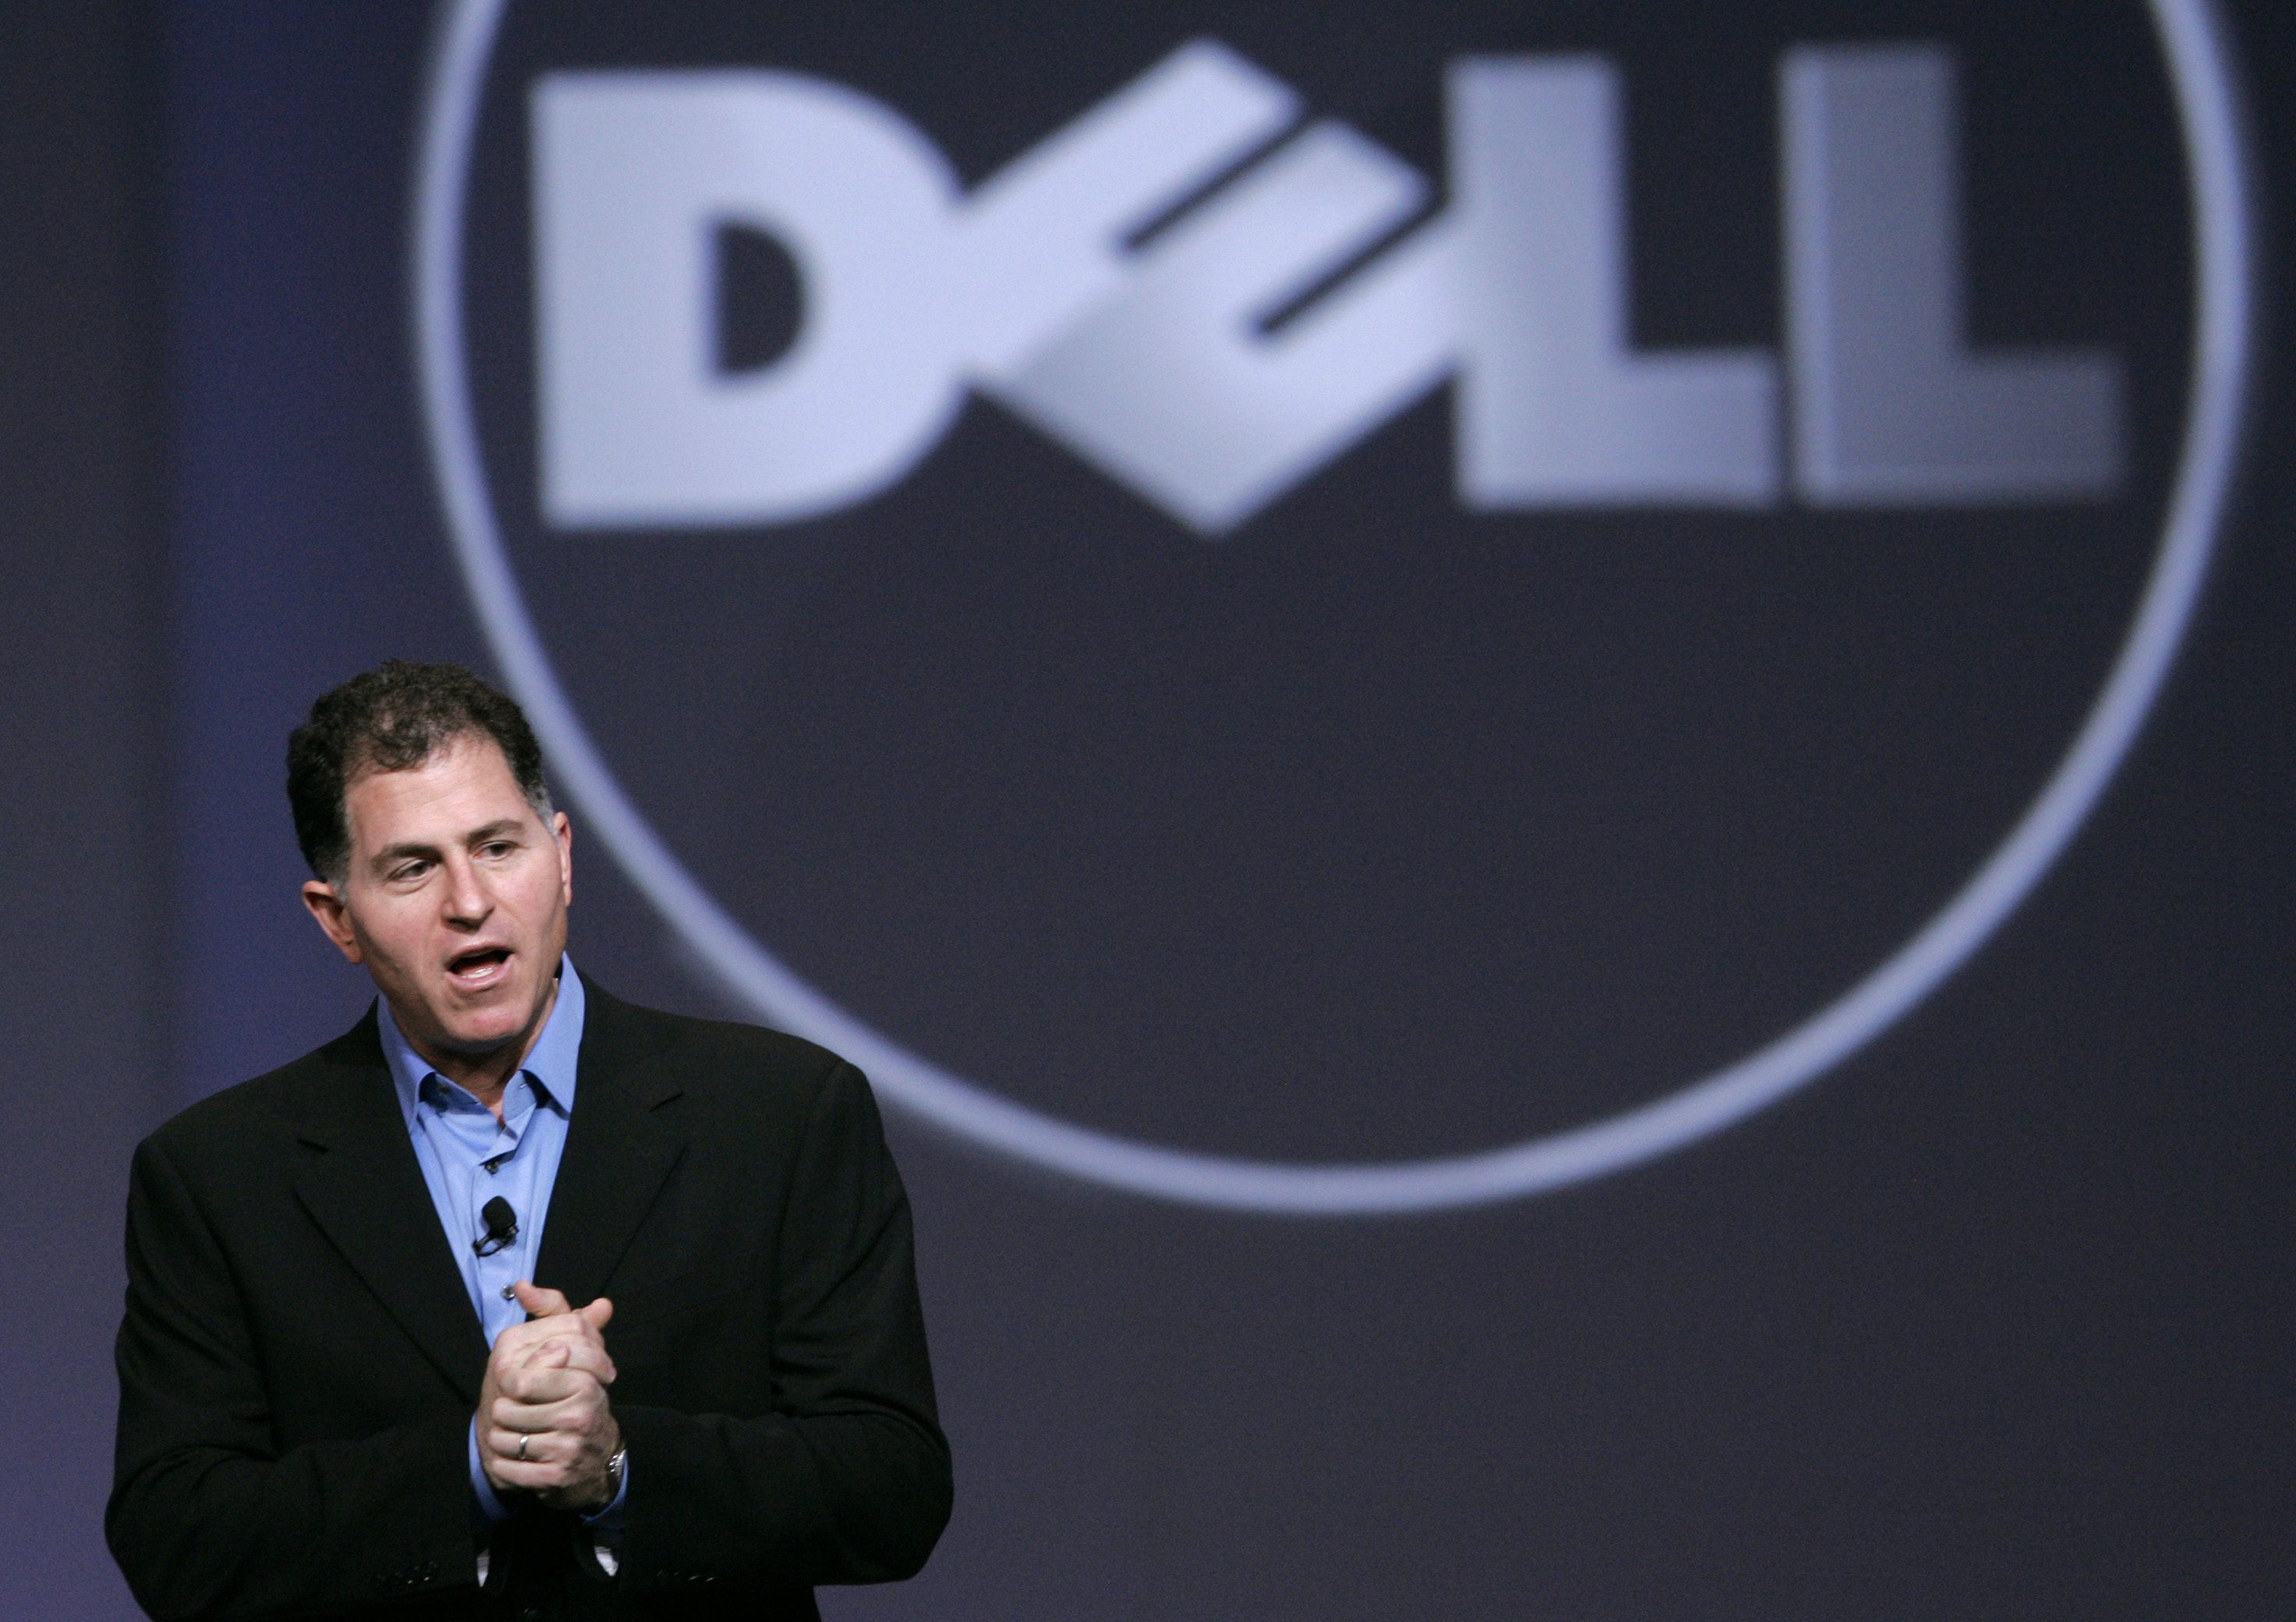 Dell Inc. CEO Michael Dell gives keynote address at Oracle Open World in San Francisco